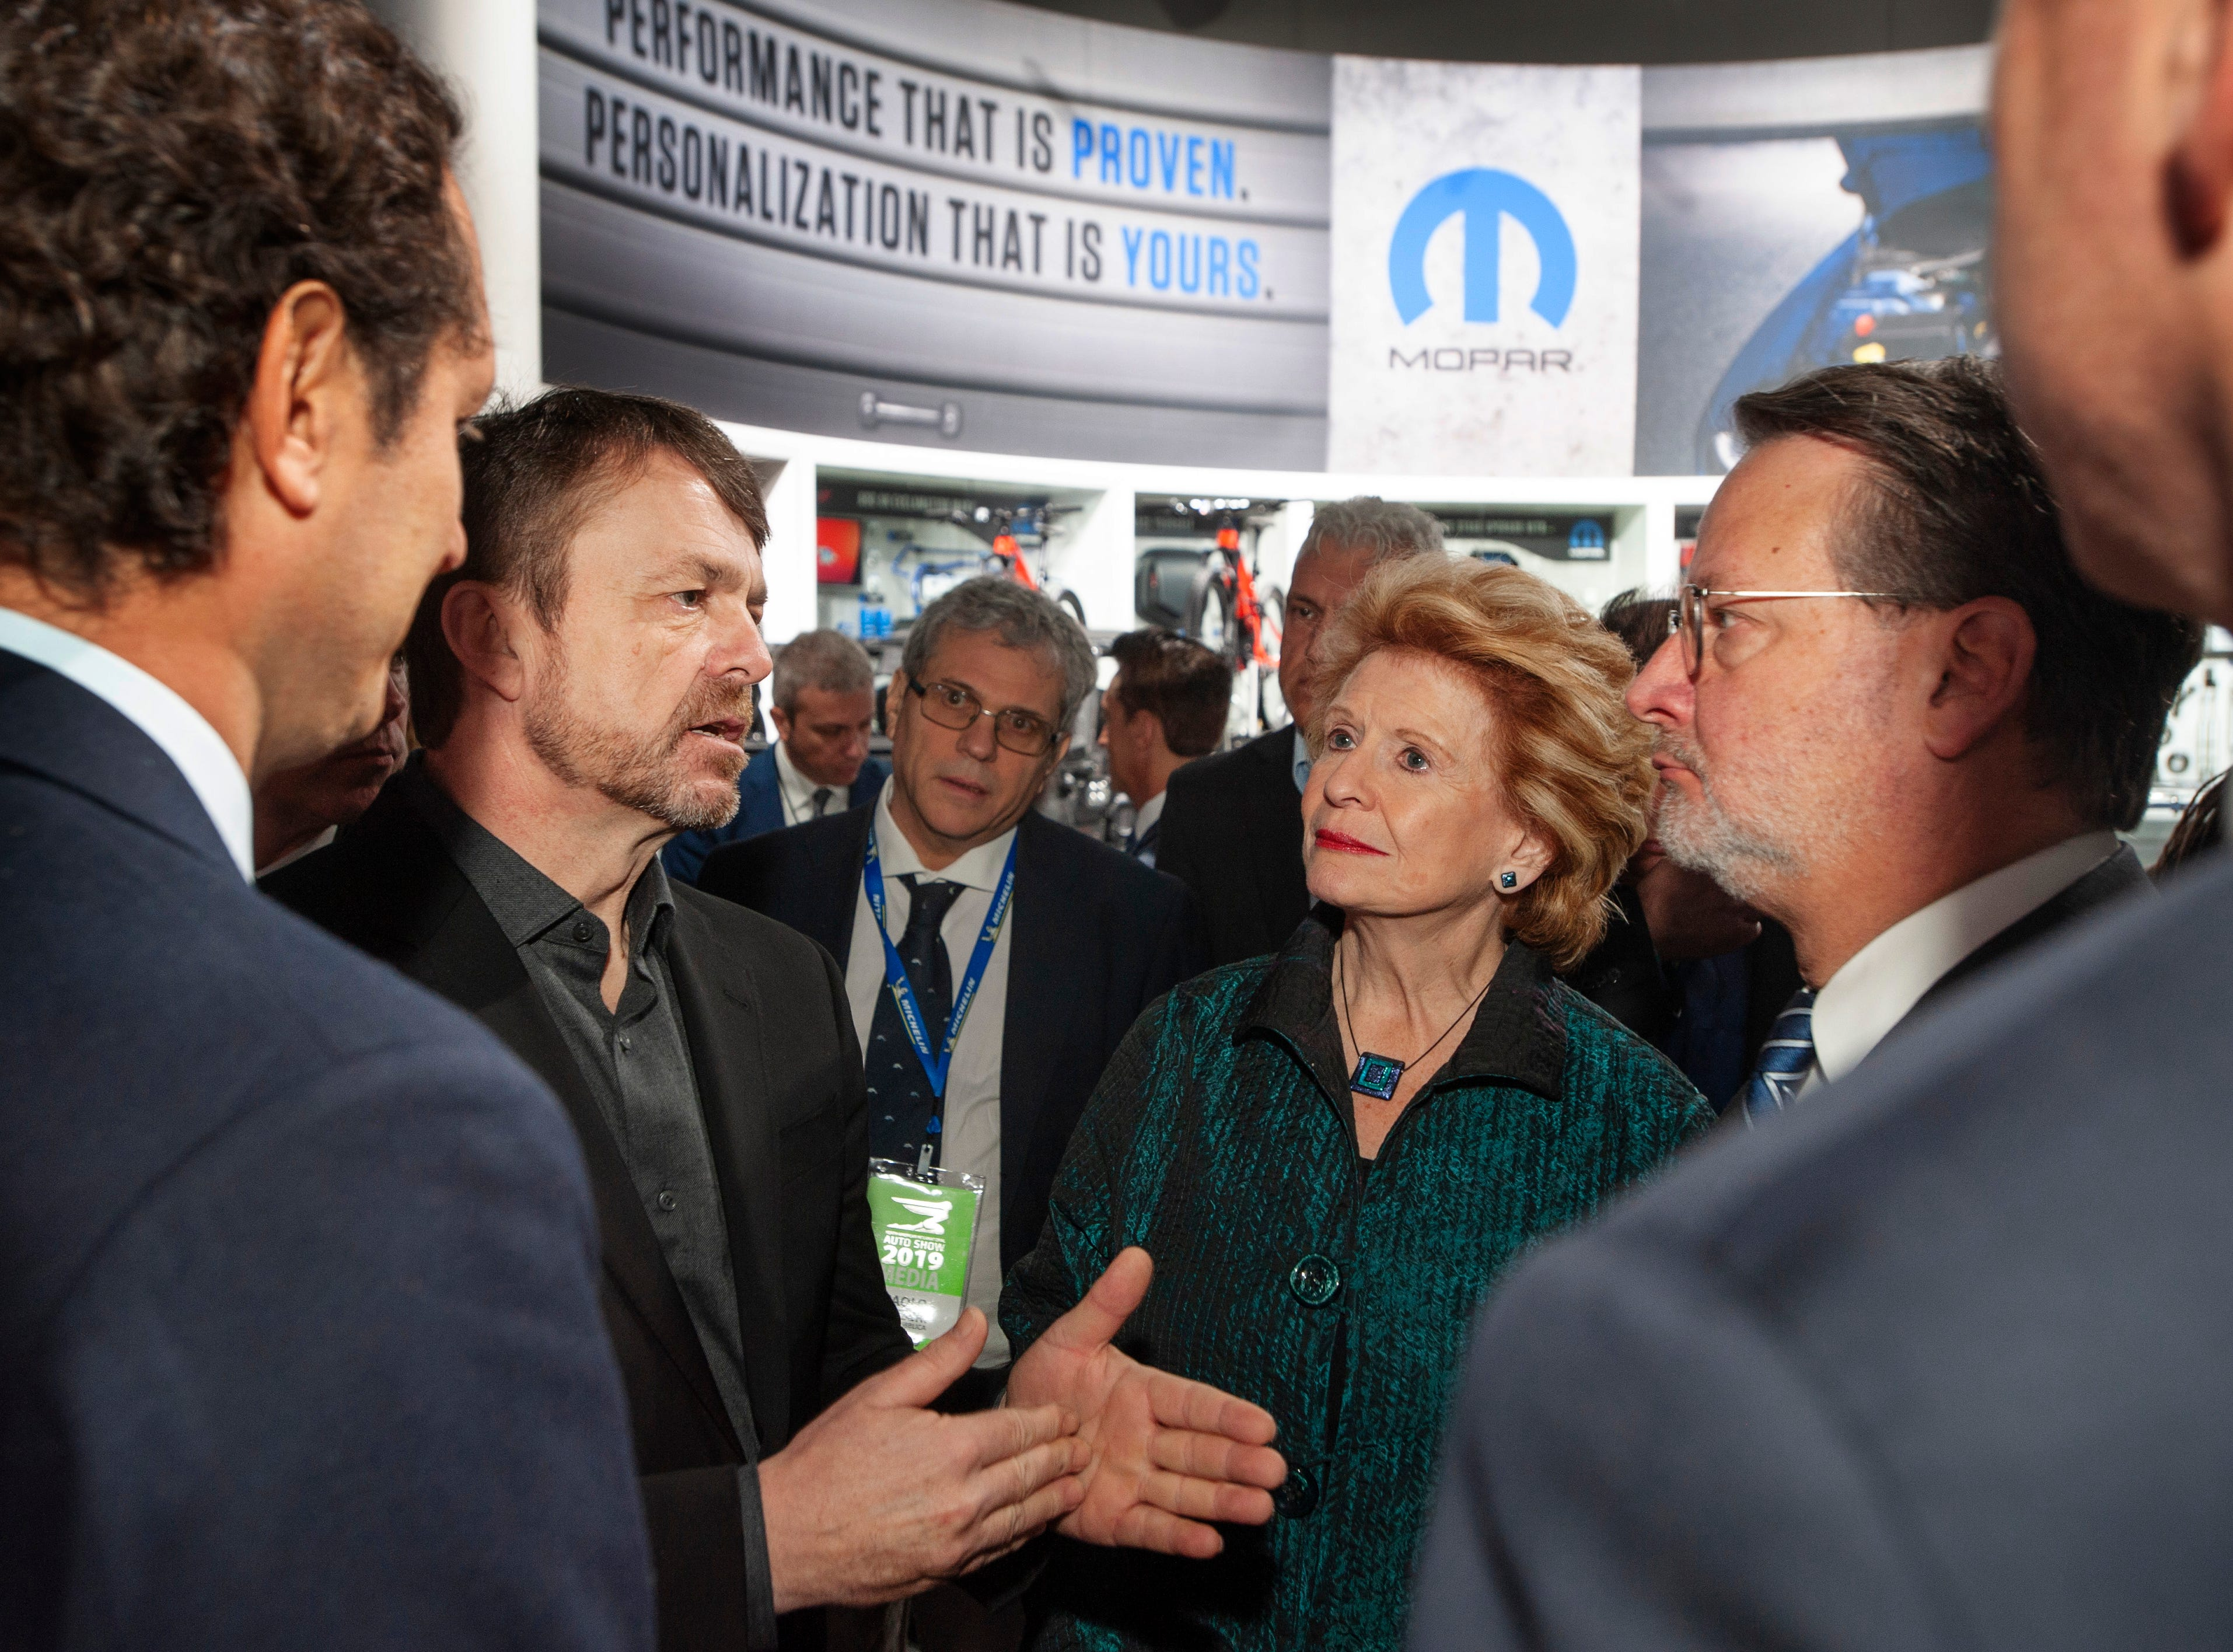 Fiat Chrysler Automobiles CEO Mike Manley speaks with U.S. Sens. Debbie Stabenow and Gary Peters, right, along with FCA Chairman John Elkann, far left, during the politicians' visit to the FCA exhibit space at the North American International Auto Show in Detroit on Monday, Jan. 14, 2019.